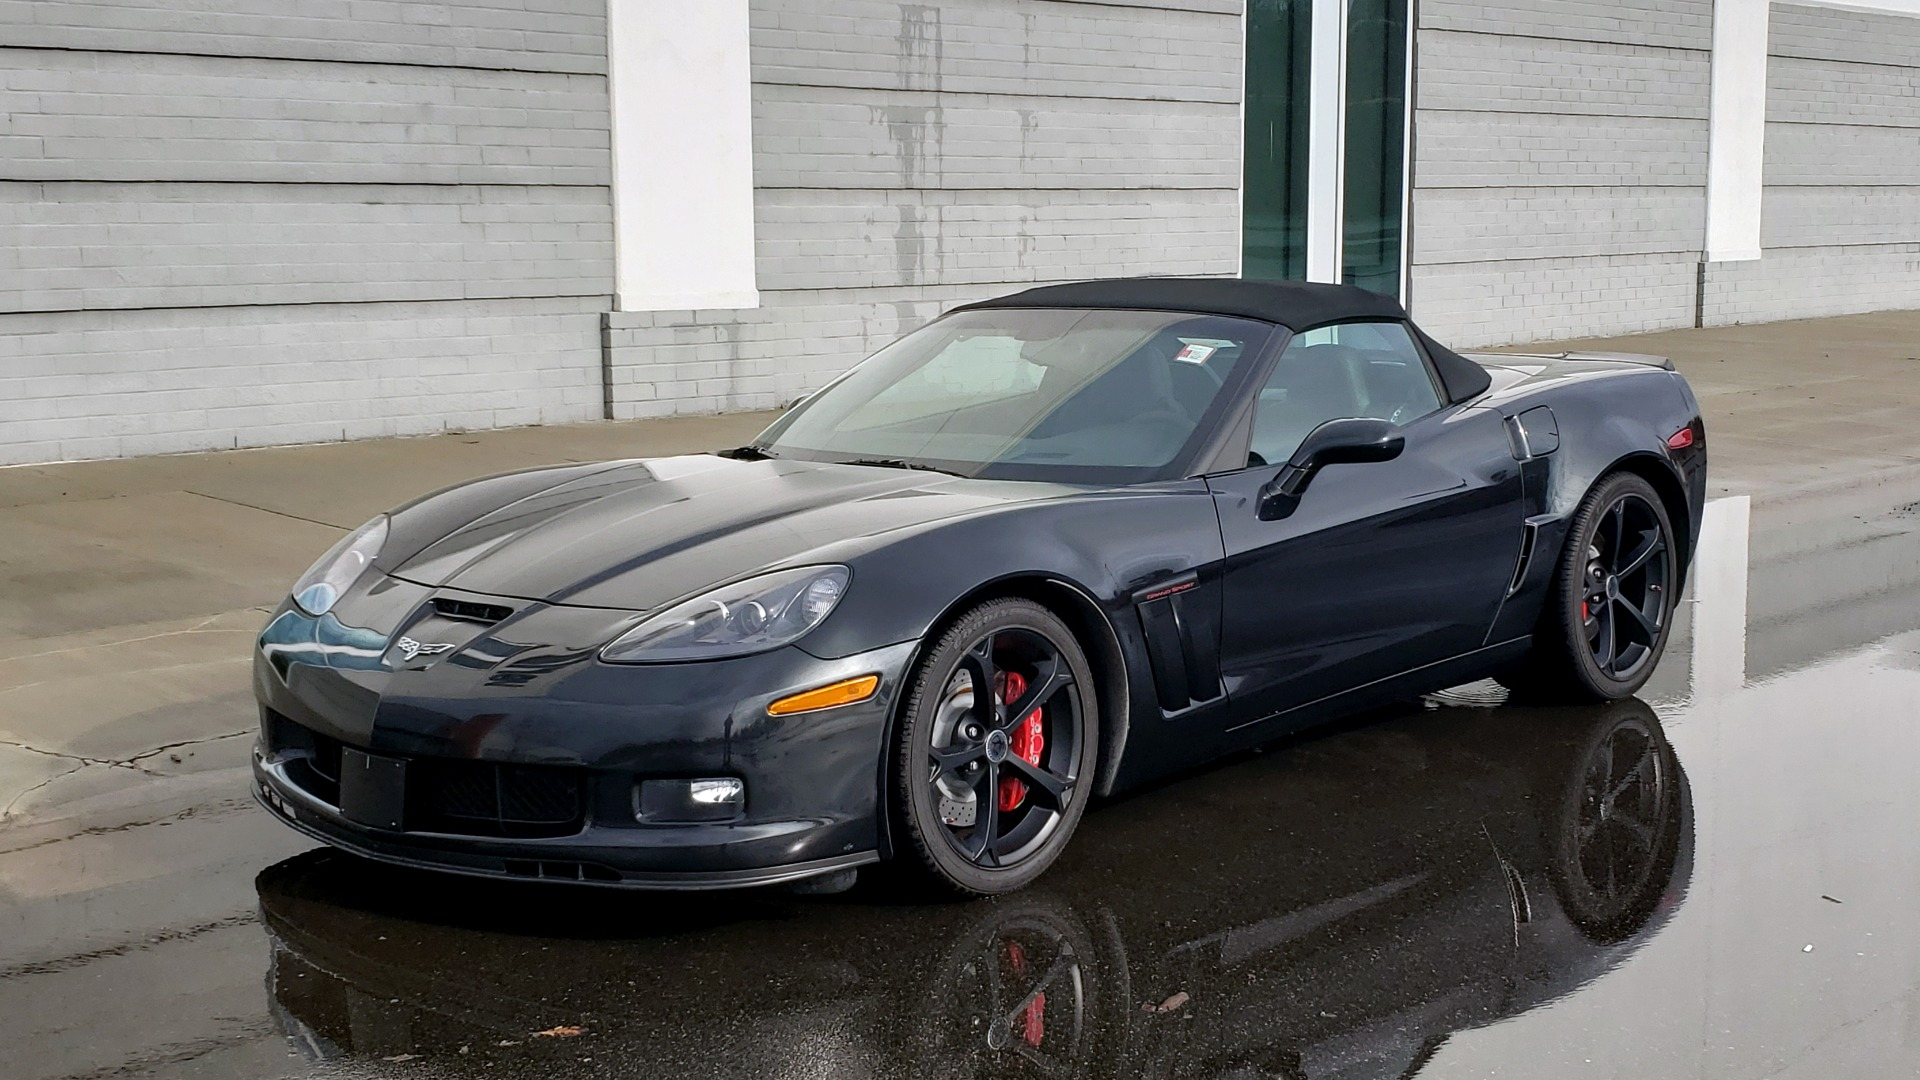 Used 2012 Chevrolet CORVETTE Z16 GRAND SPORT 3LT CONVERTIBLE / 6-SPD AUTO / NAV for sale Sold at Formula Imports in Charlotte NC 28227 1